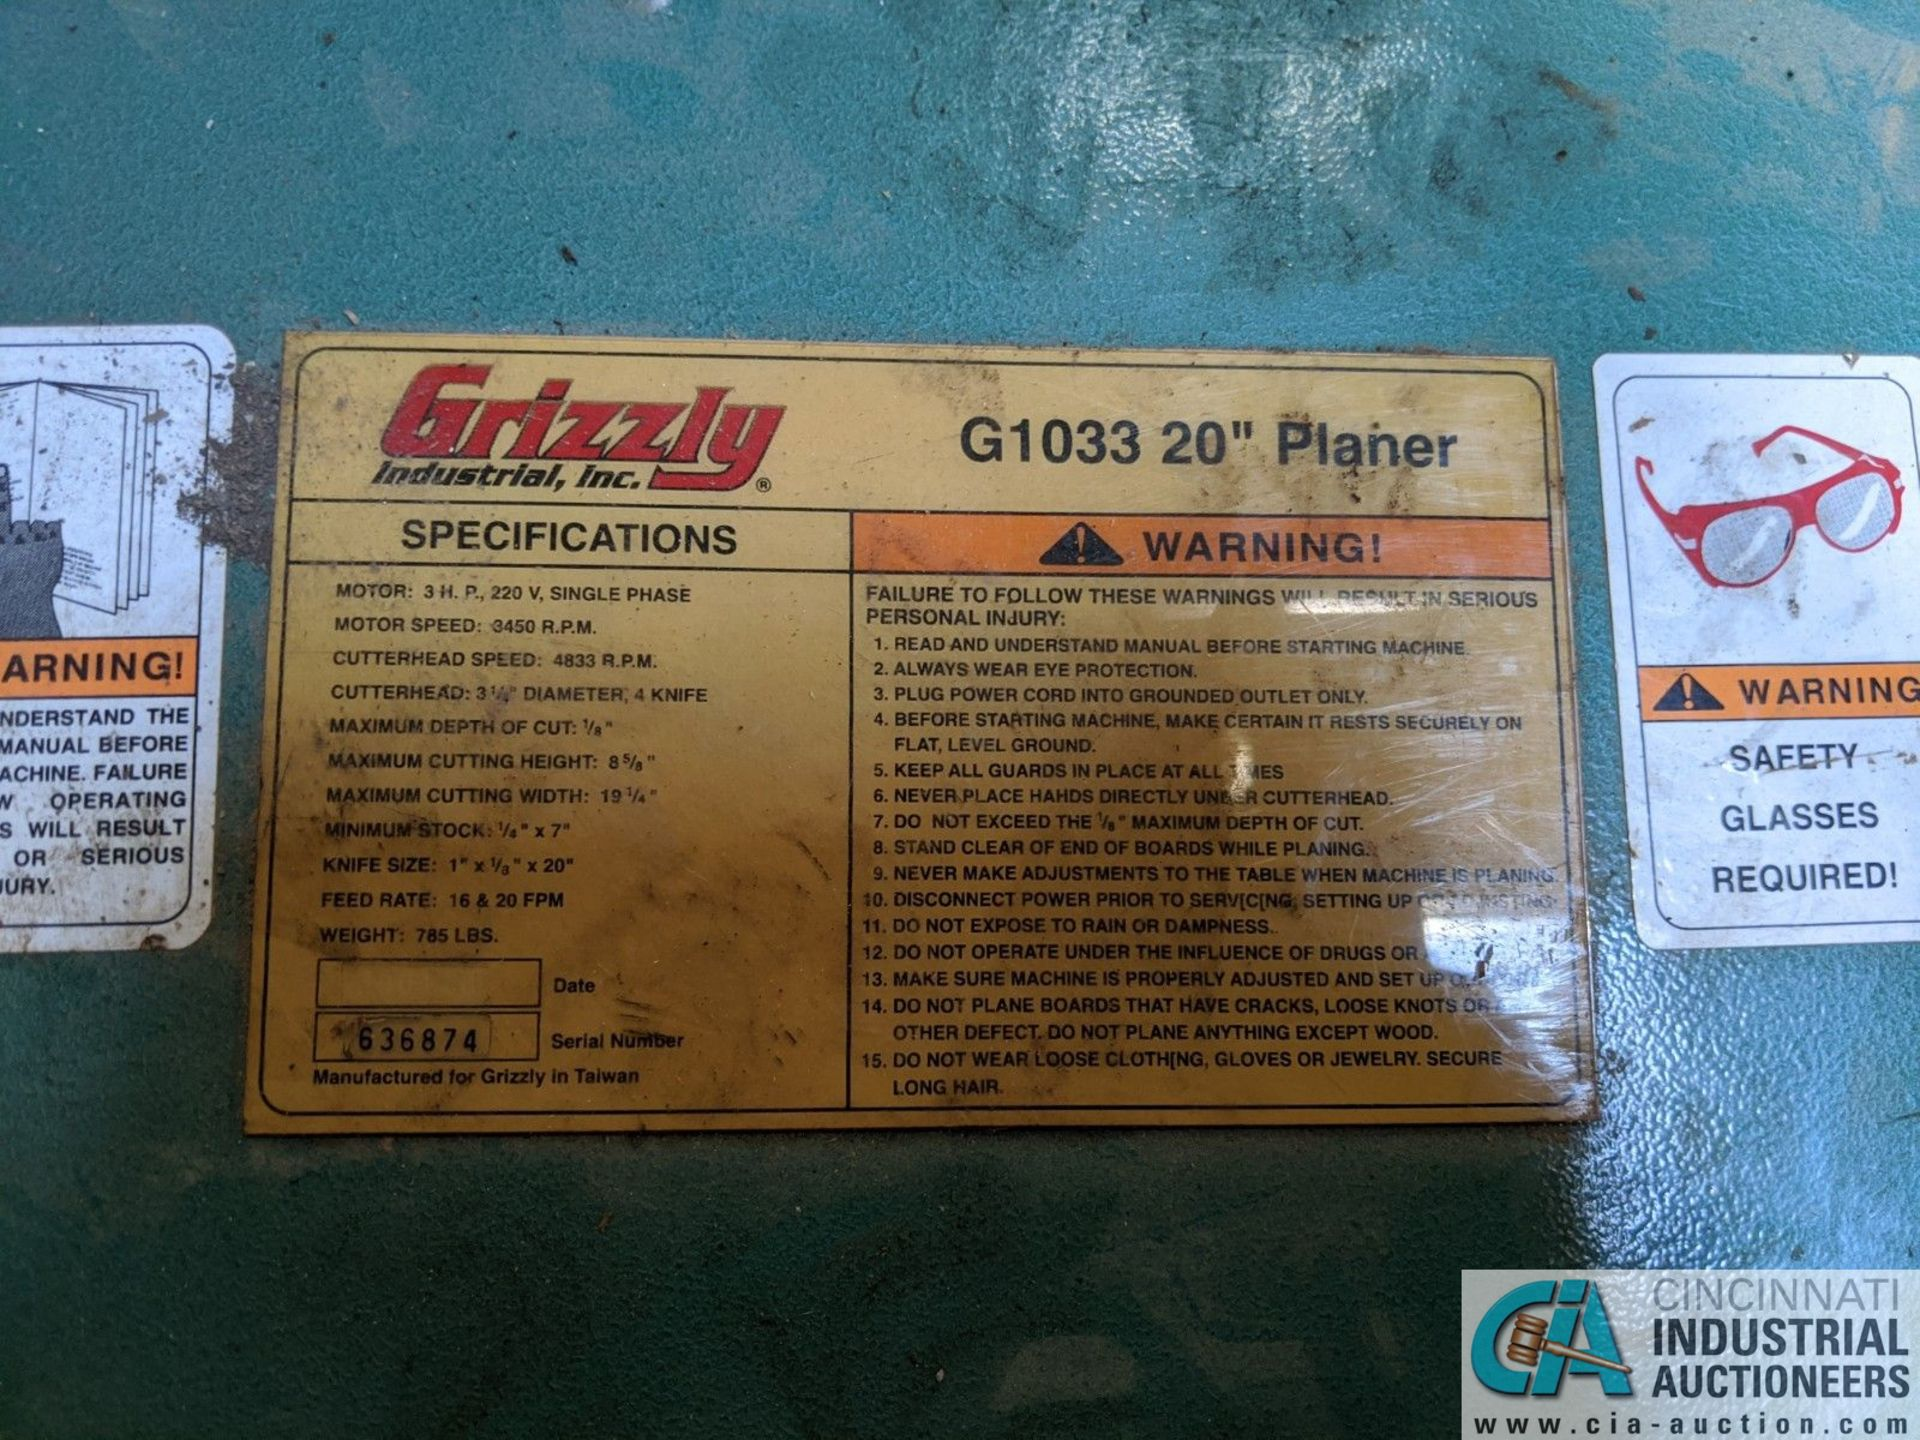 """20"""" GRIZZLY MODEL G1033 PLANER; S/N 636874, 16 - 20 FPM (8635 East Ave., Mentor, OH 44060 - John - Image 6 of 6"""